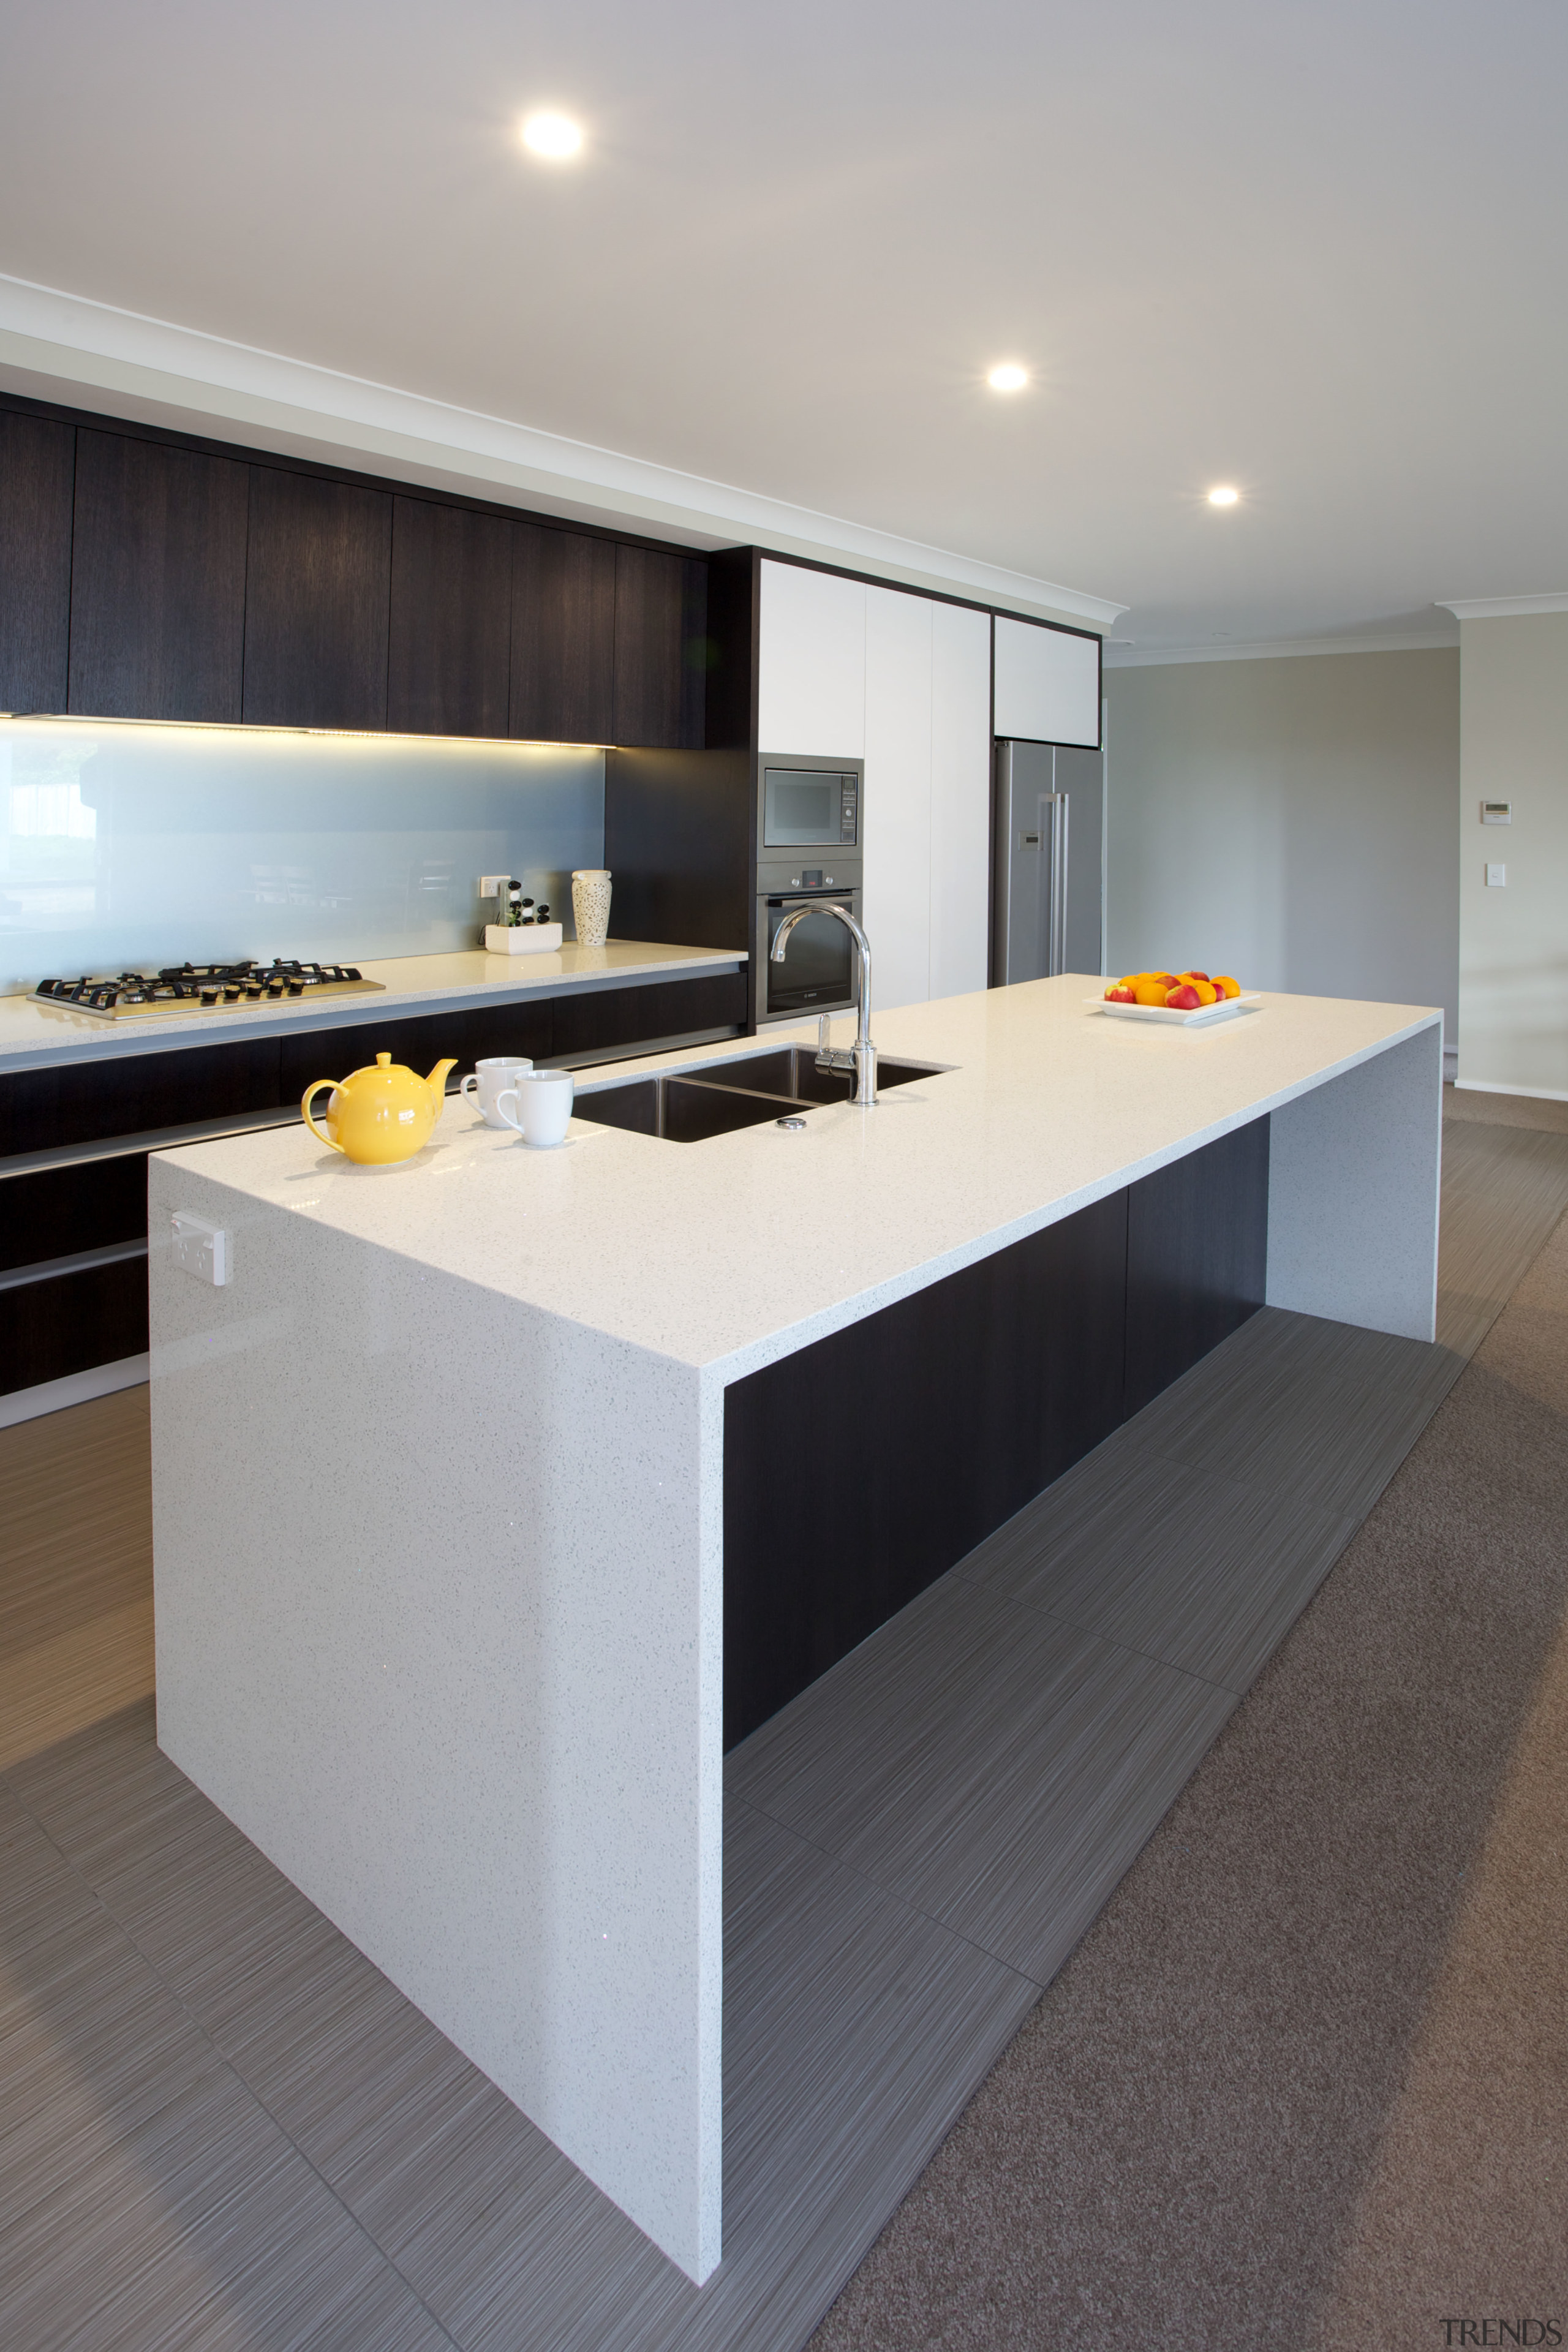 The cabinets in this kitchen by Arcadia Joinery architecture, countertop, interior design, kitchen, real estate, gray